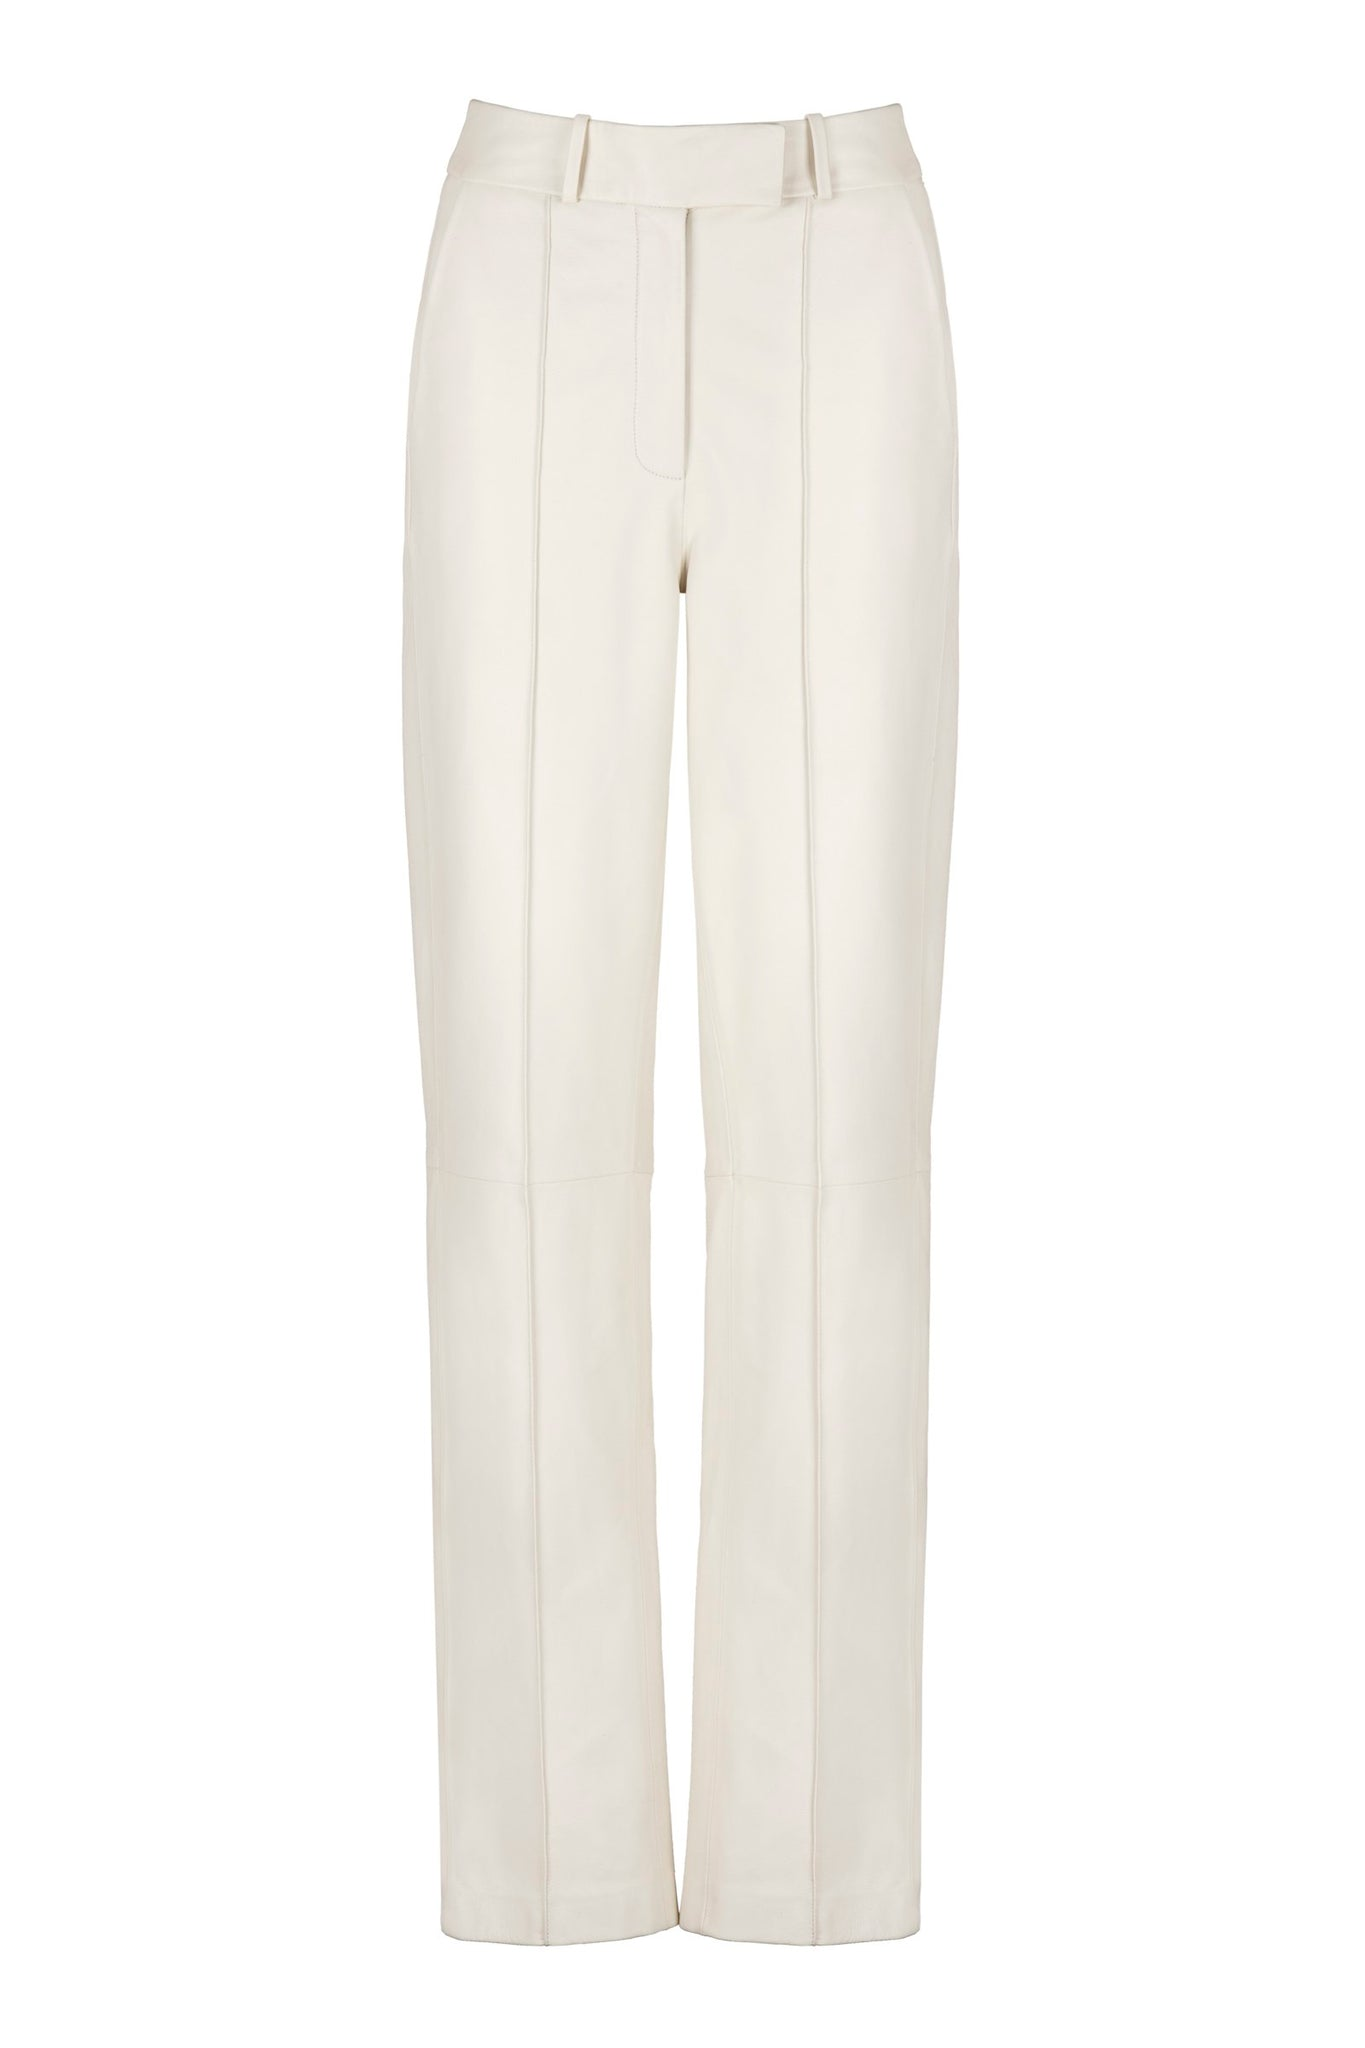 Off-white trouser. High-waisted leather pants. Made from buttery leather in a flattering long straight-leg silhouette.